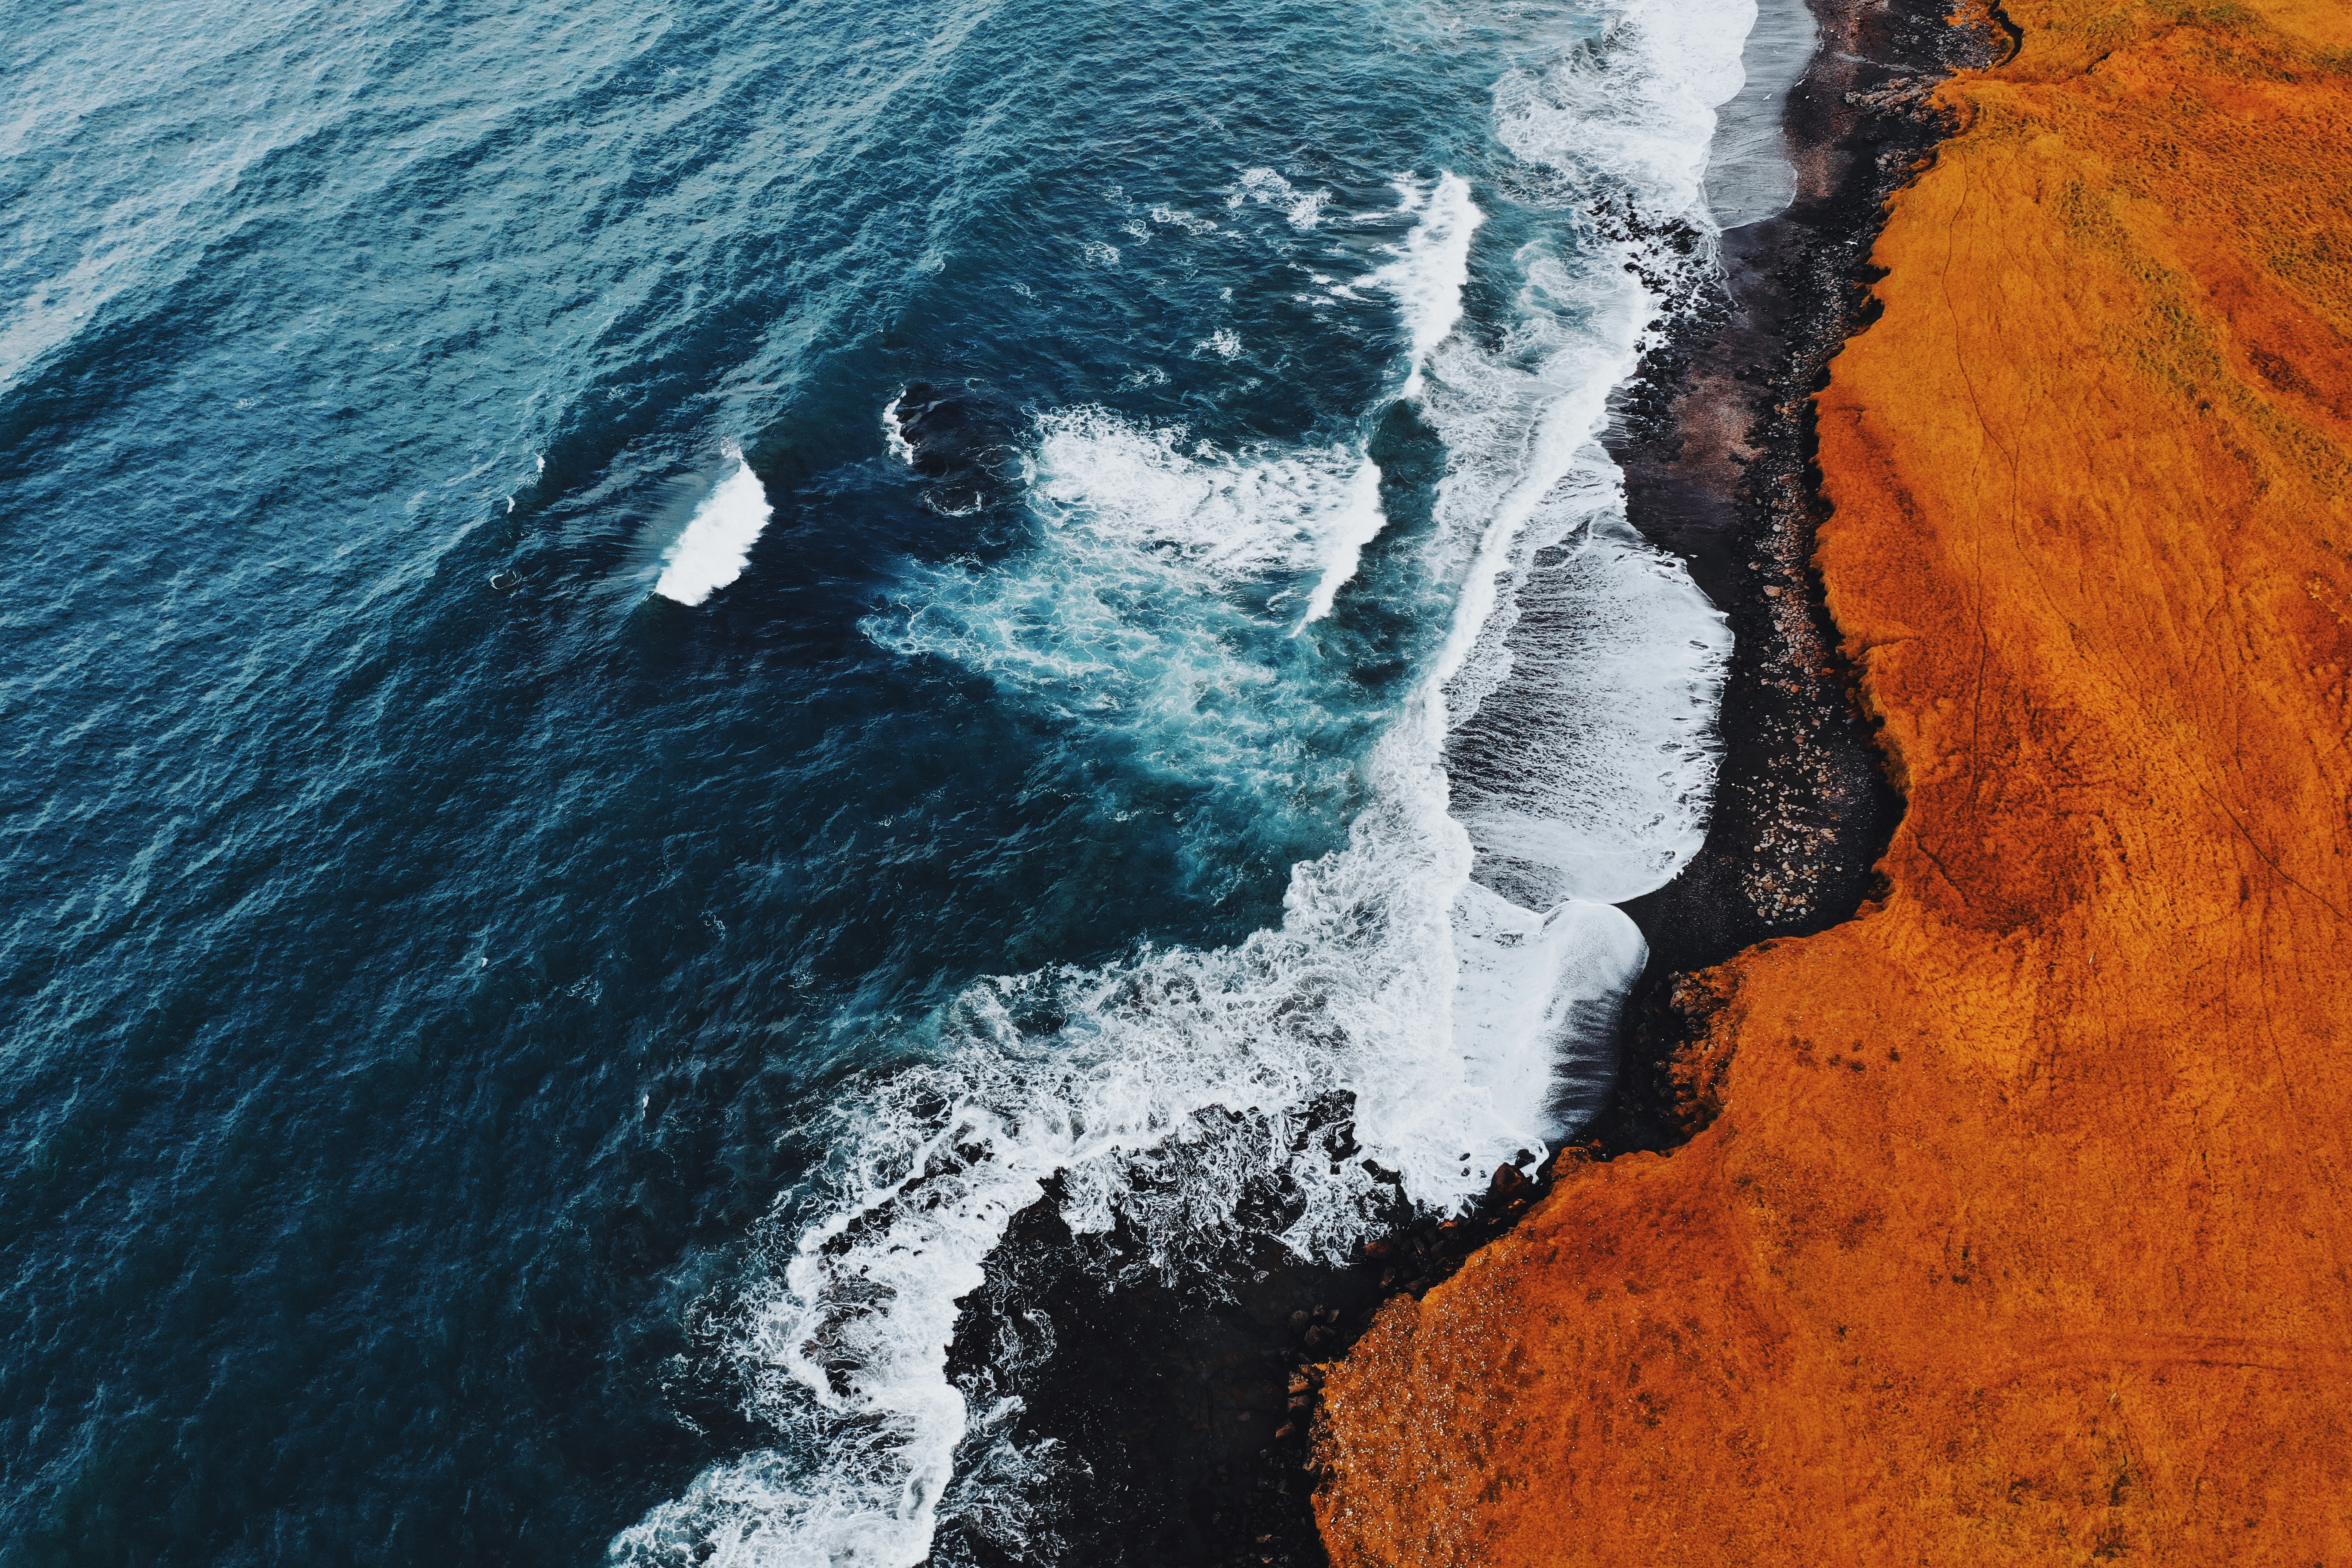 General 5472x3648 nature water aerial view coast sea waves